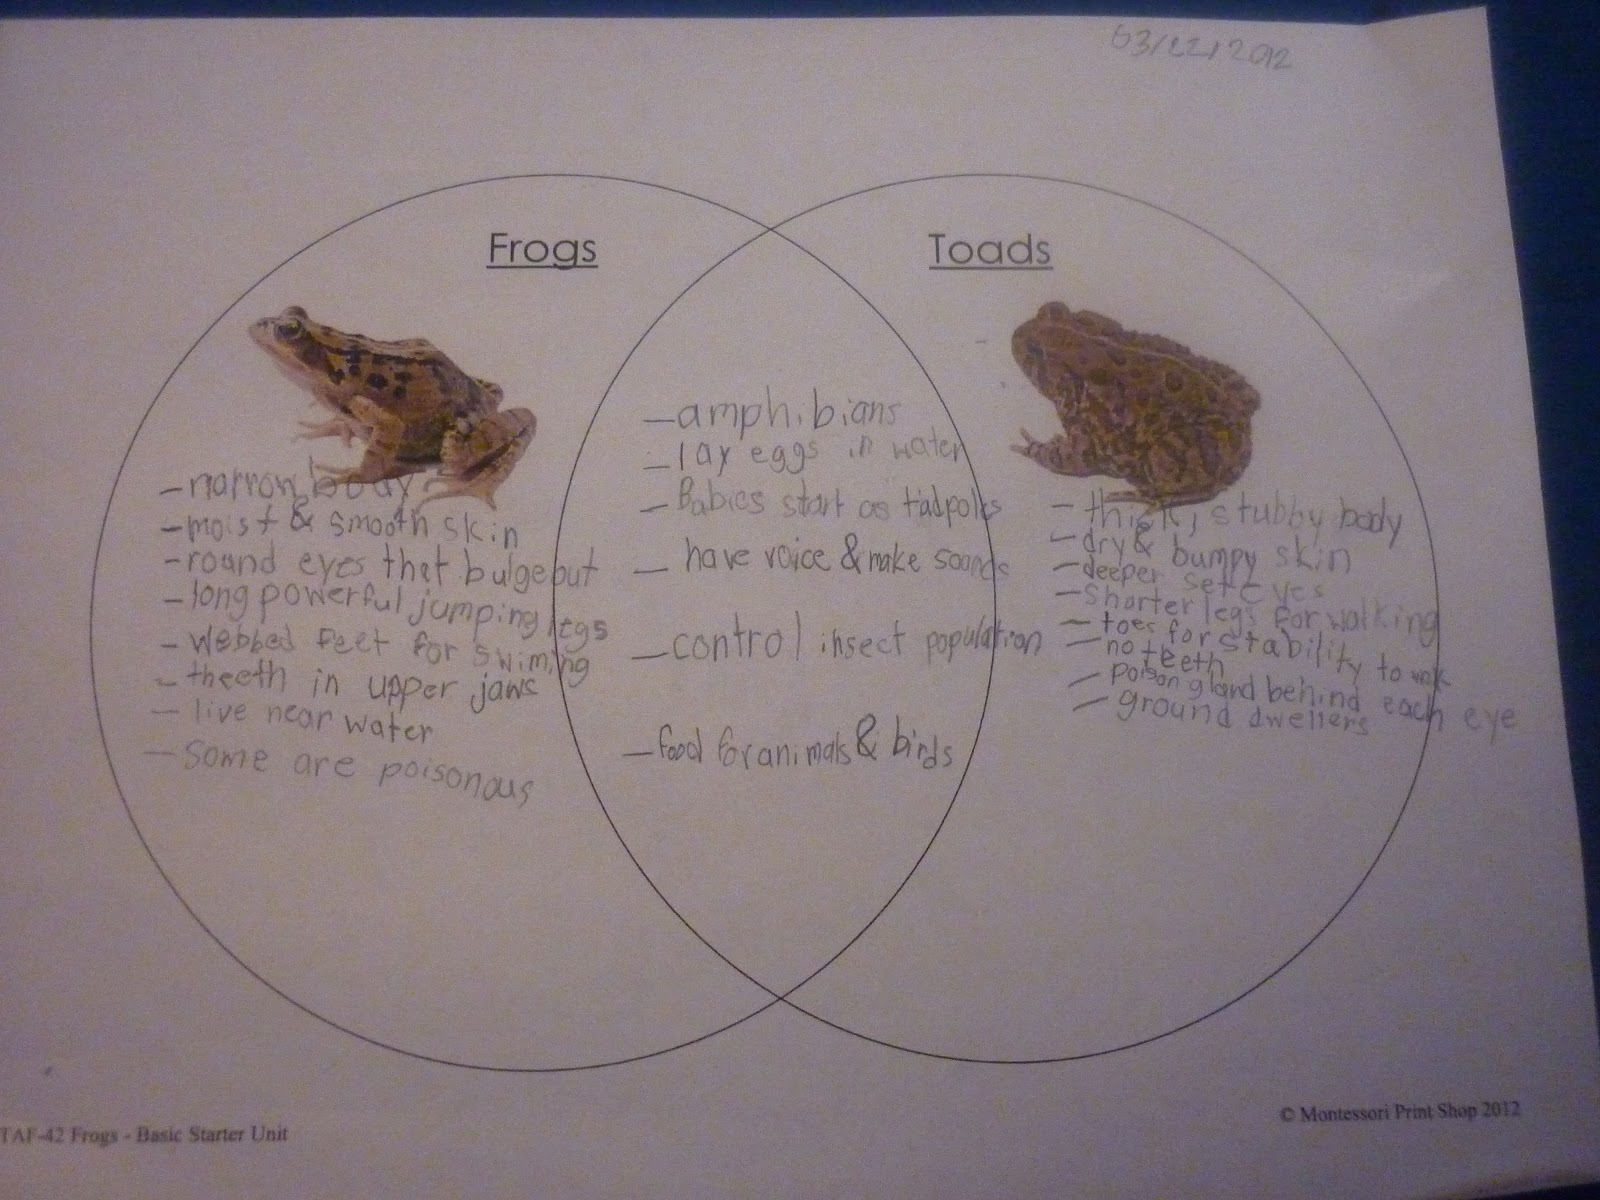 Frog And Toad Venn Diagram How To Draw A Car Wiring We Don 39t Need No Education Daily Report Lots Of Reading